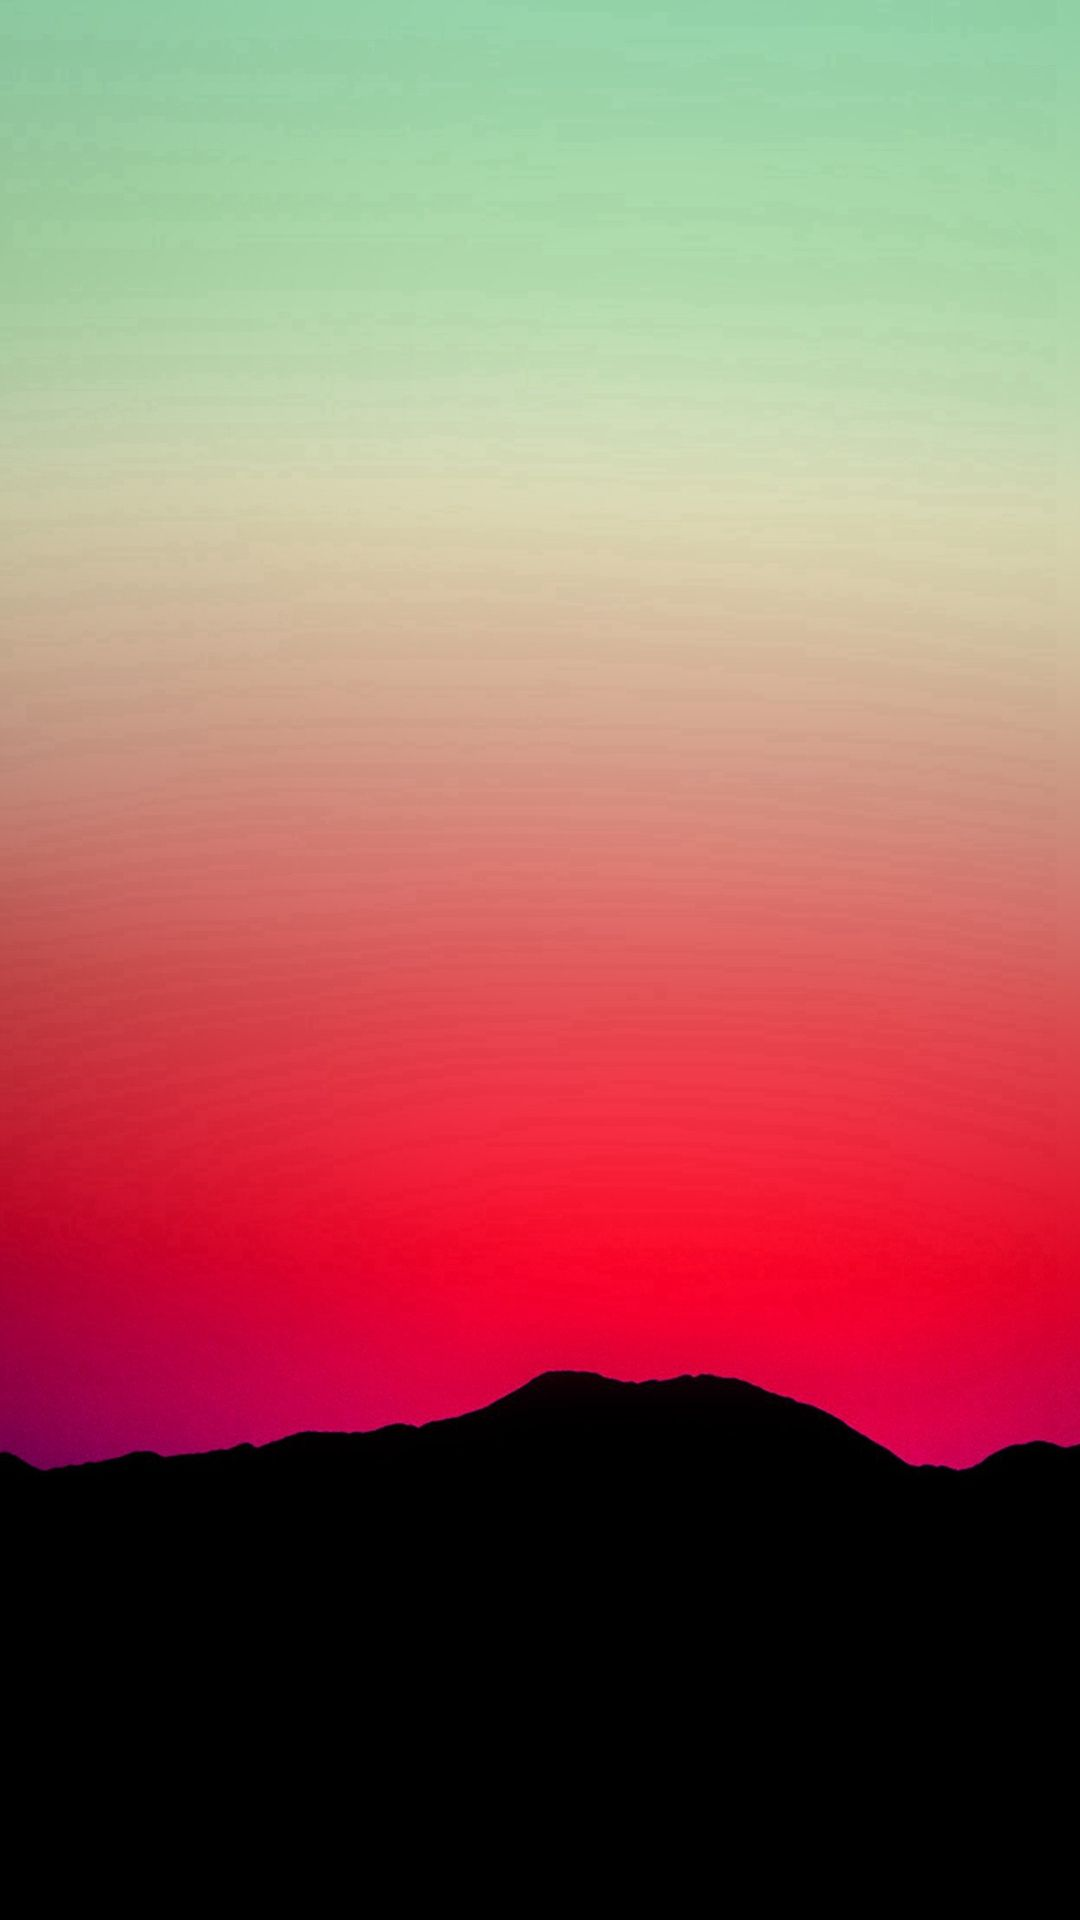 Sunset Sky Minimal Nature Red Green Iphone 6 Wallpaper Sunset Sky Wallpaper Green Wallpaper